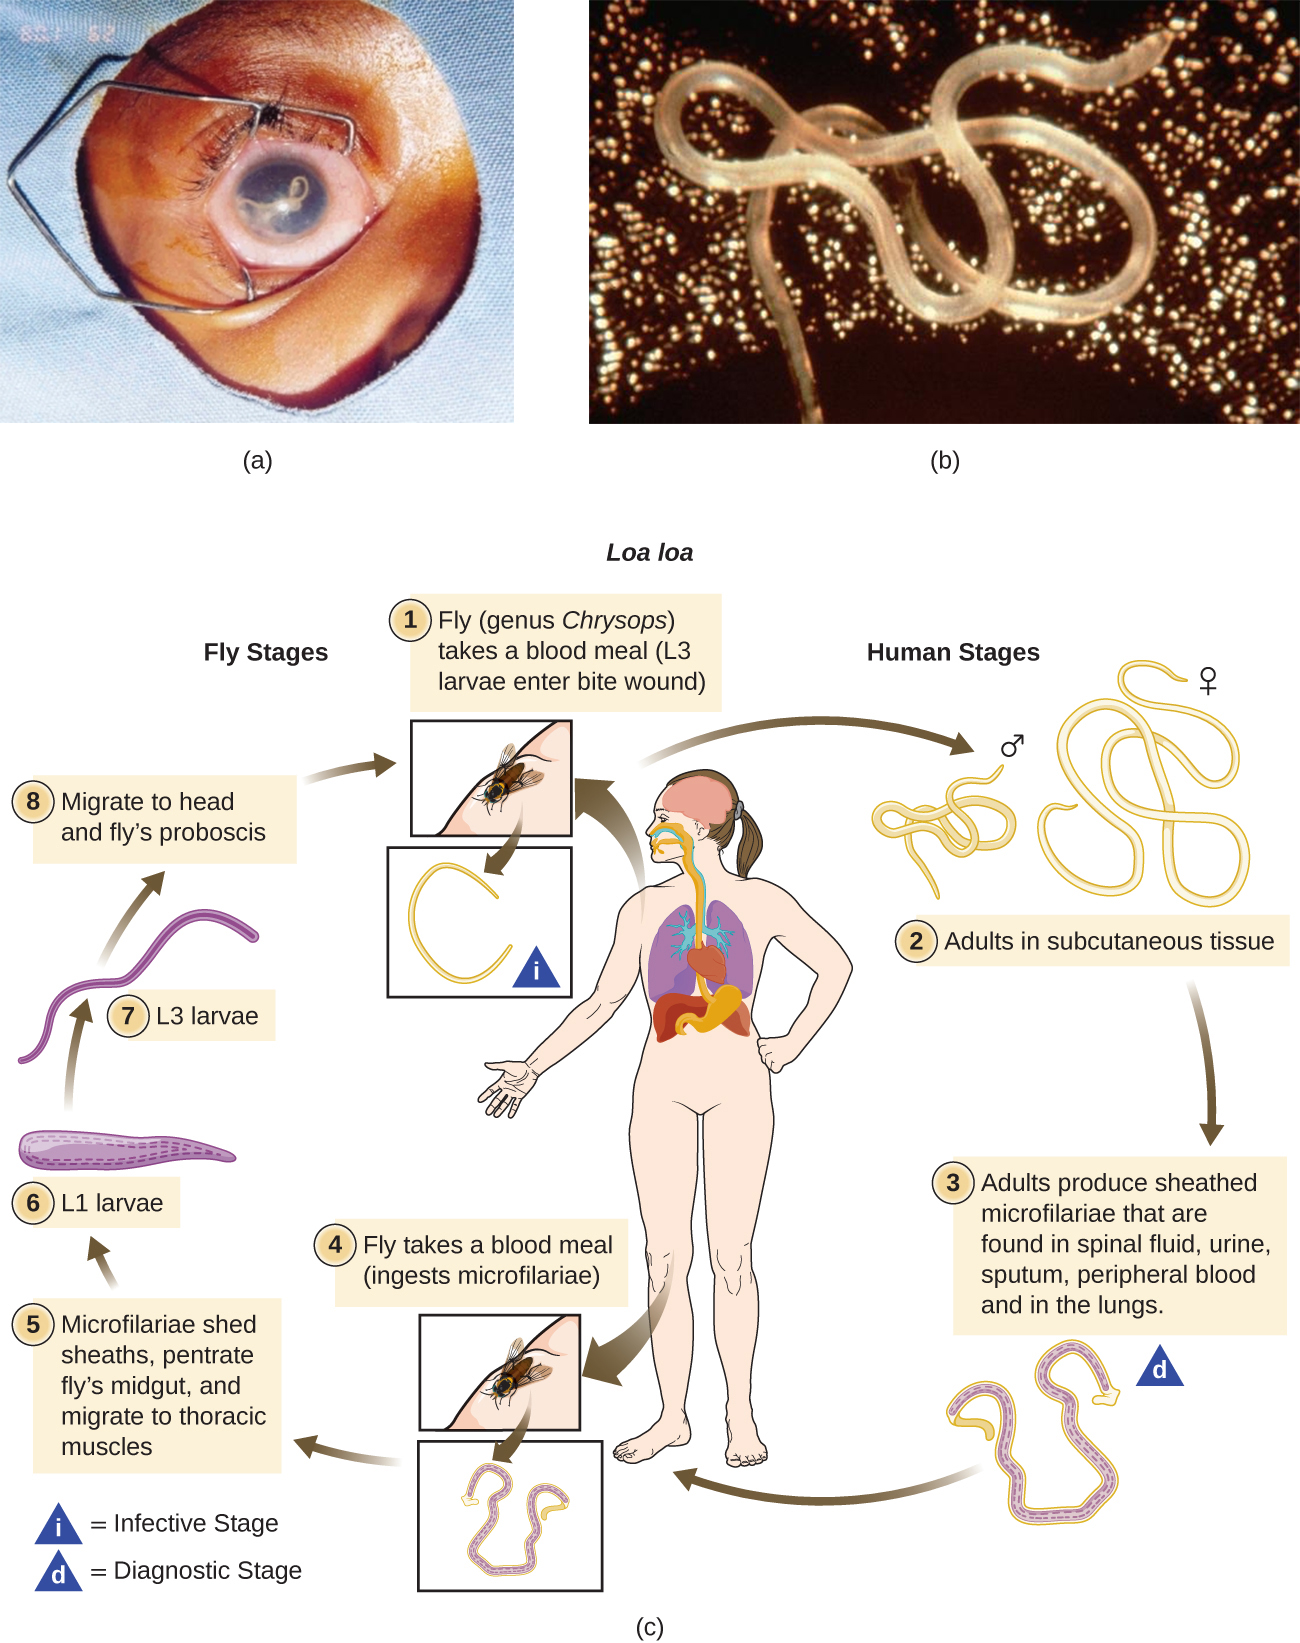 The first part of the image is a photograph of an eye with a visible worm inside of it and a photo of a close-up of the worm. The second image is a illustrated chart showing the Life cycle of Lao lao. Fly (genus Chrysops) takes a blood meal (L3 larvae enter the bite wound). Adults grow into long worms in the subcutaneous tissue. Adults produce sheathed microfilariae that are found in spinal fluid, urine, sputum, peripheral blood, and in the lungs. Another fly take a blood meal and ingests microfilariae. The microfilariae shed sheaths, penetrate fly's midgut, and migrate to thoracic muscles. The L1 larvae forms and becomes an L3 larvae which migrates to the head and fly's proboscis. The fly is now ready to infect another person